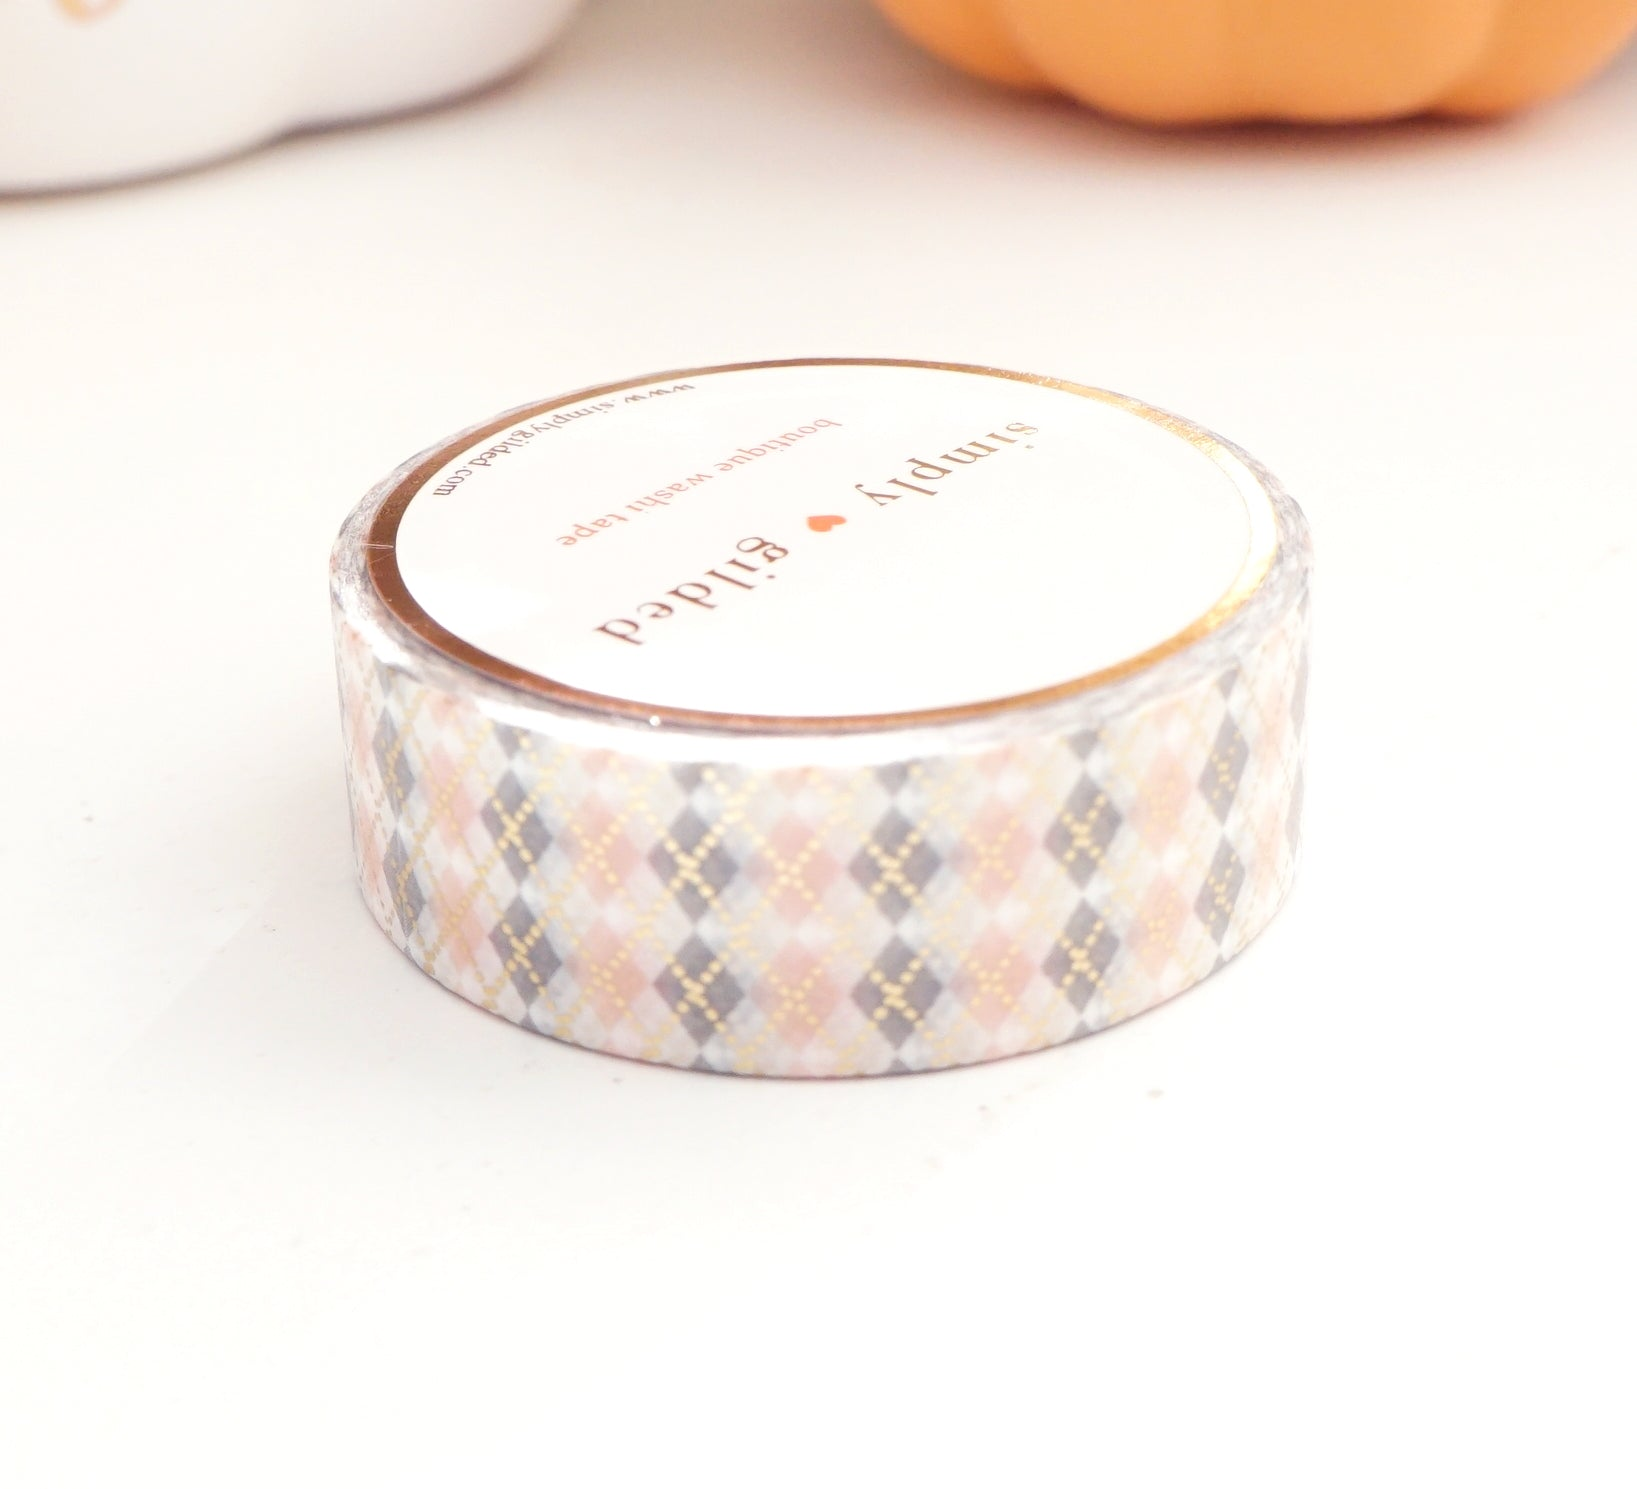 WASHI TAPE 15mm - ARGYLE PRINT GREY & PINK + lt. gold foil (October 2019 Release)